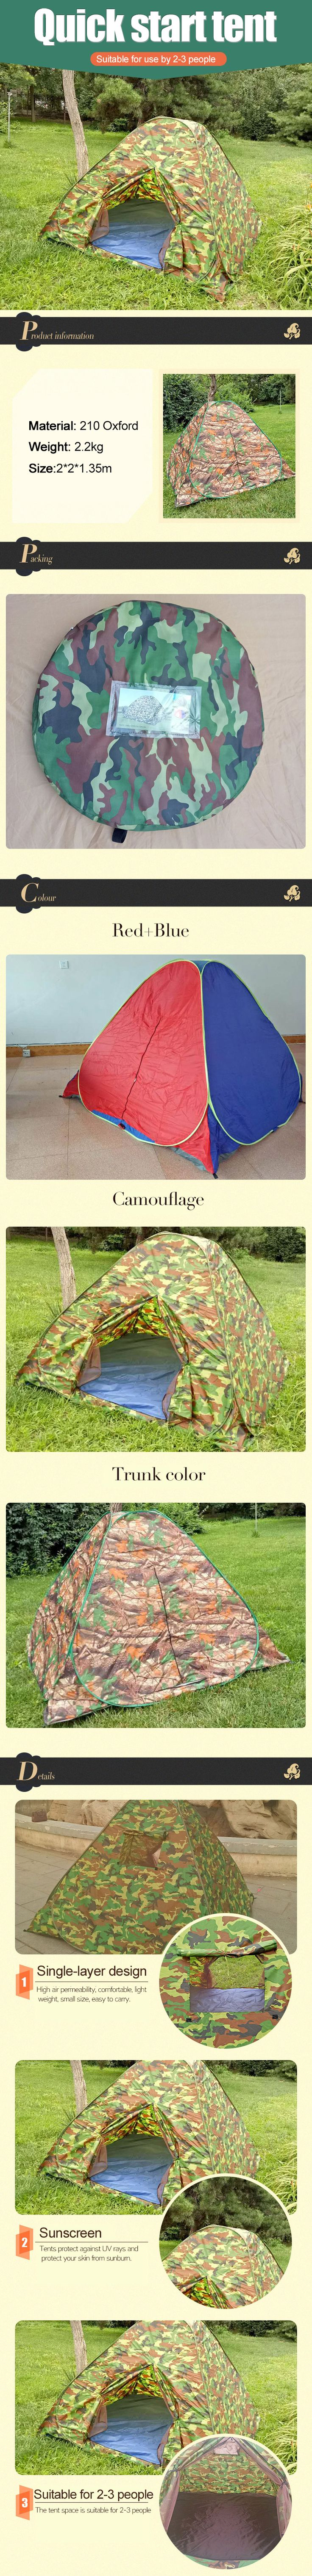 Outdoor Cheap Large Camping Travel 5-6 Person Pop up Family Tent #tent #tents #familytent #popuptent #foldabletent #automatictent #dometent #beachtent #sunshadetent #fiberglasstent #polyestertent #oxfordtent #nylontent #customizedtent #treetent #hikingtent #populartent